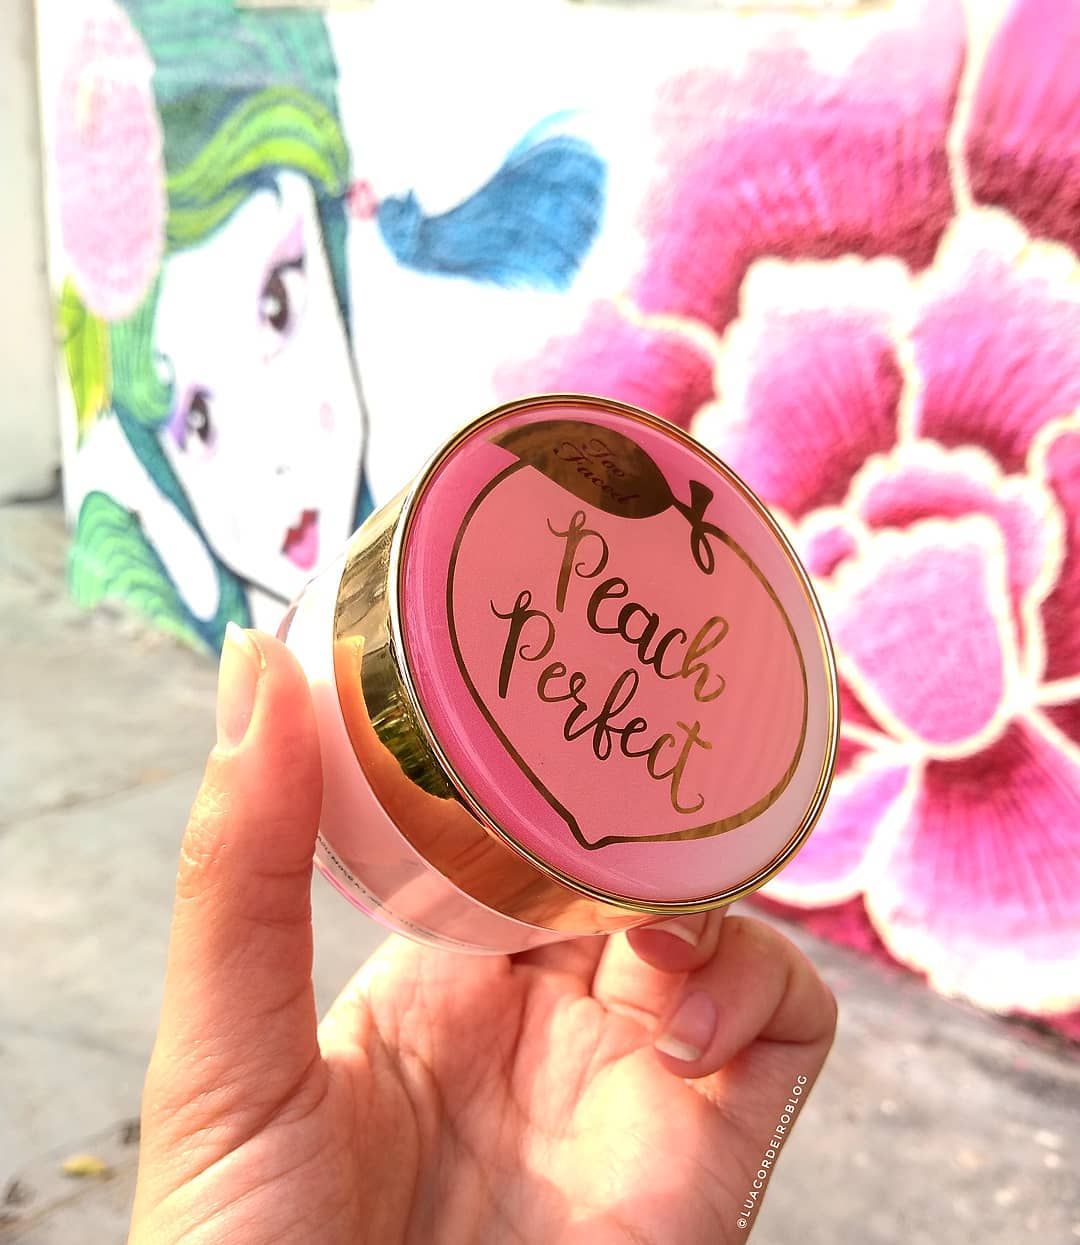 phan-toofaced-make-up-peach-perfect-mattifying-setting-powder-02